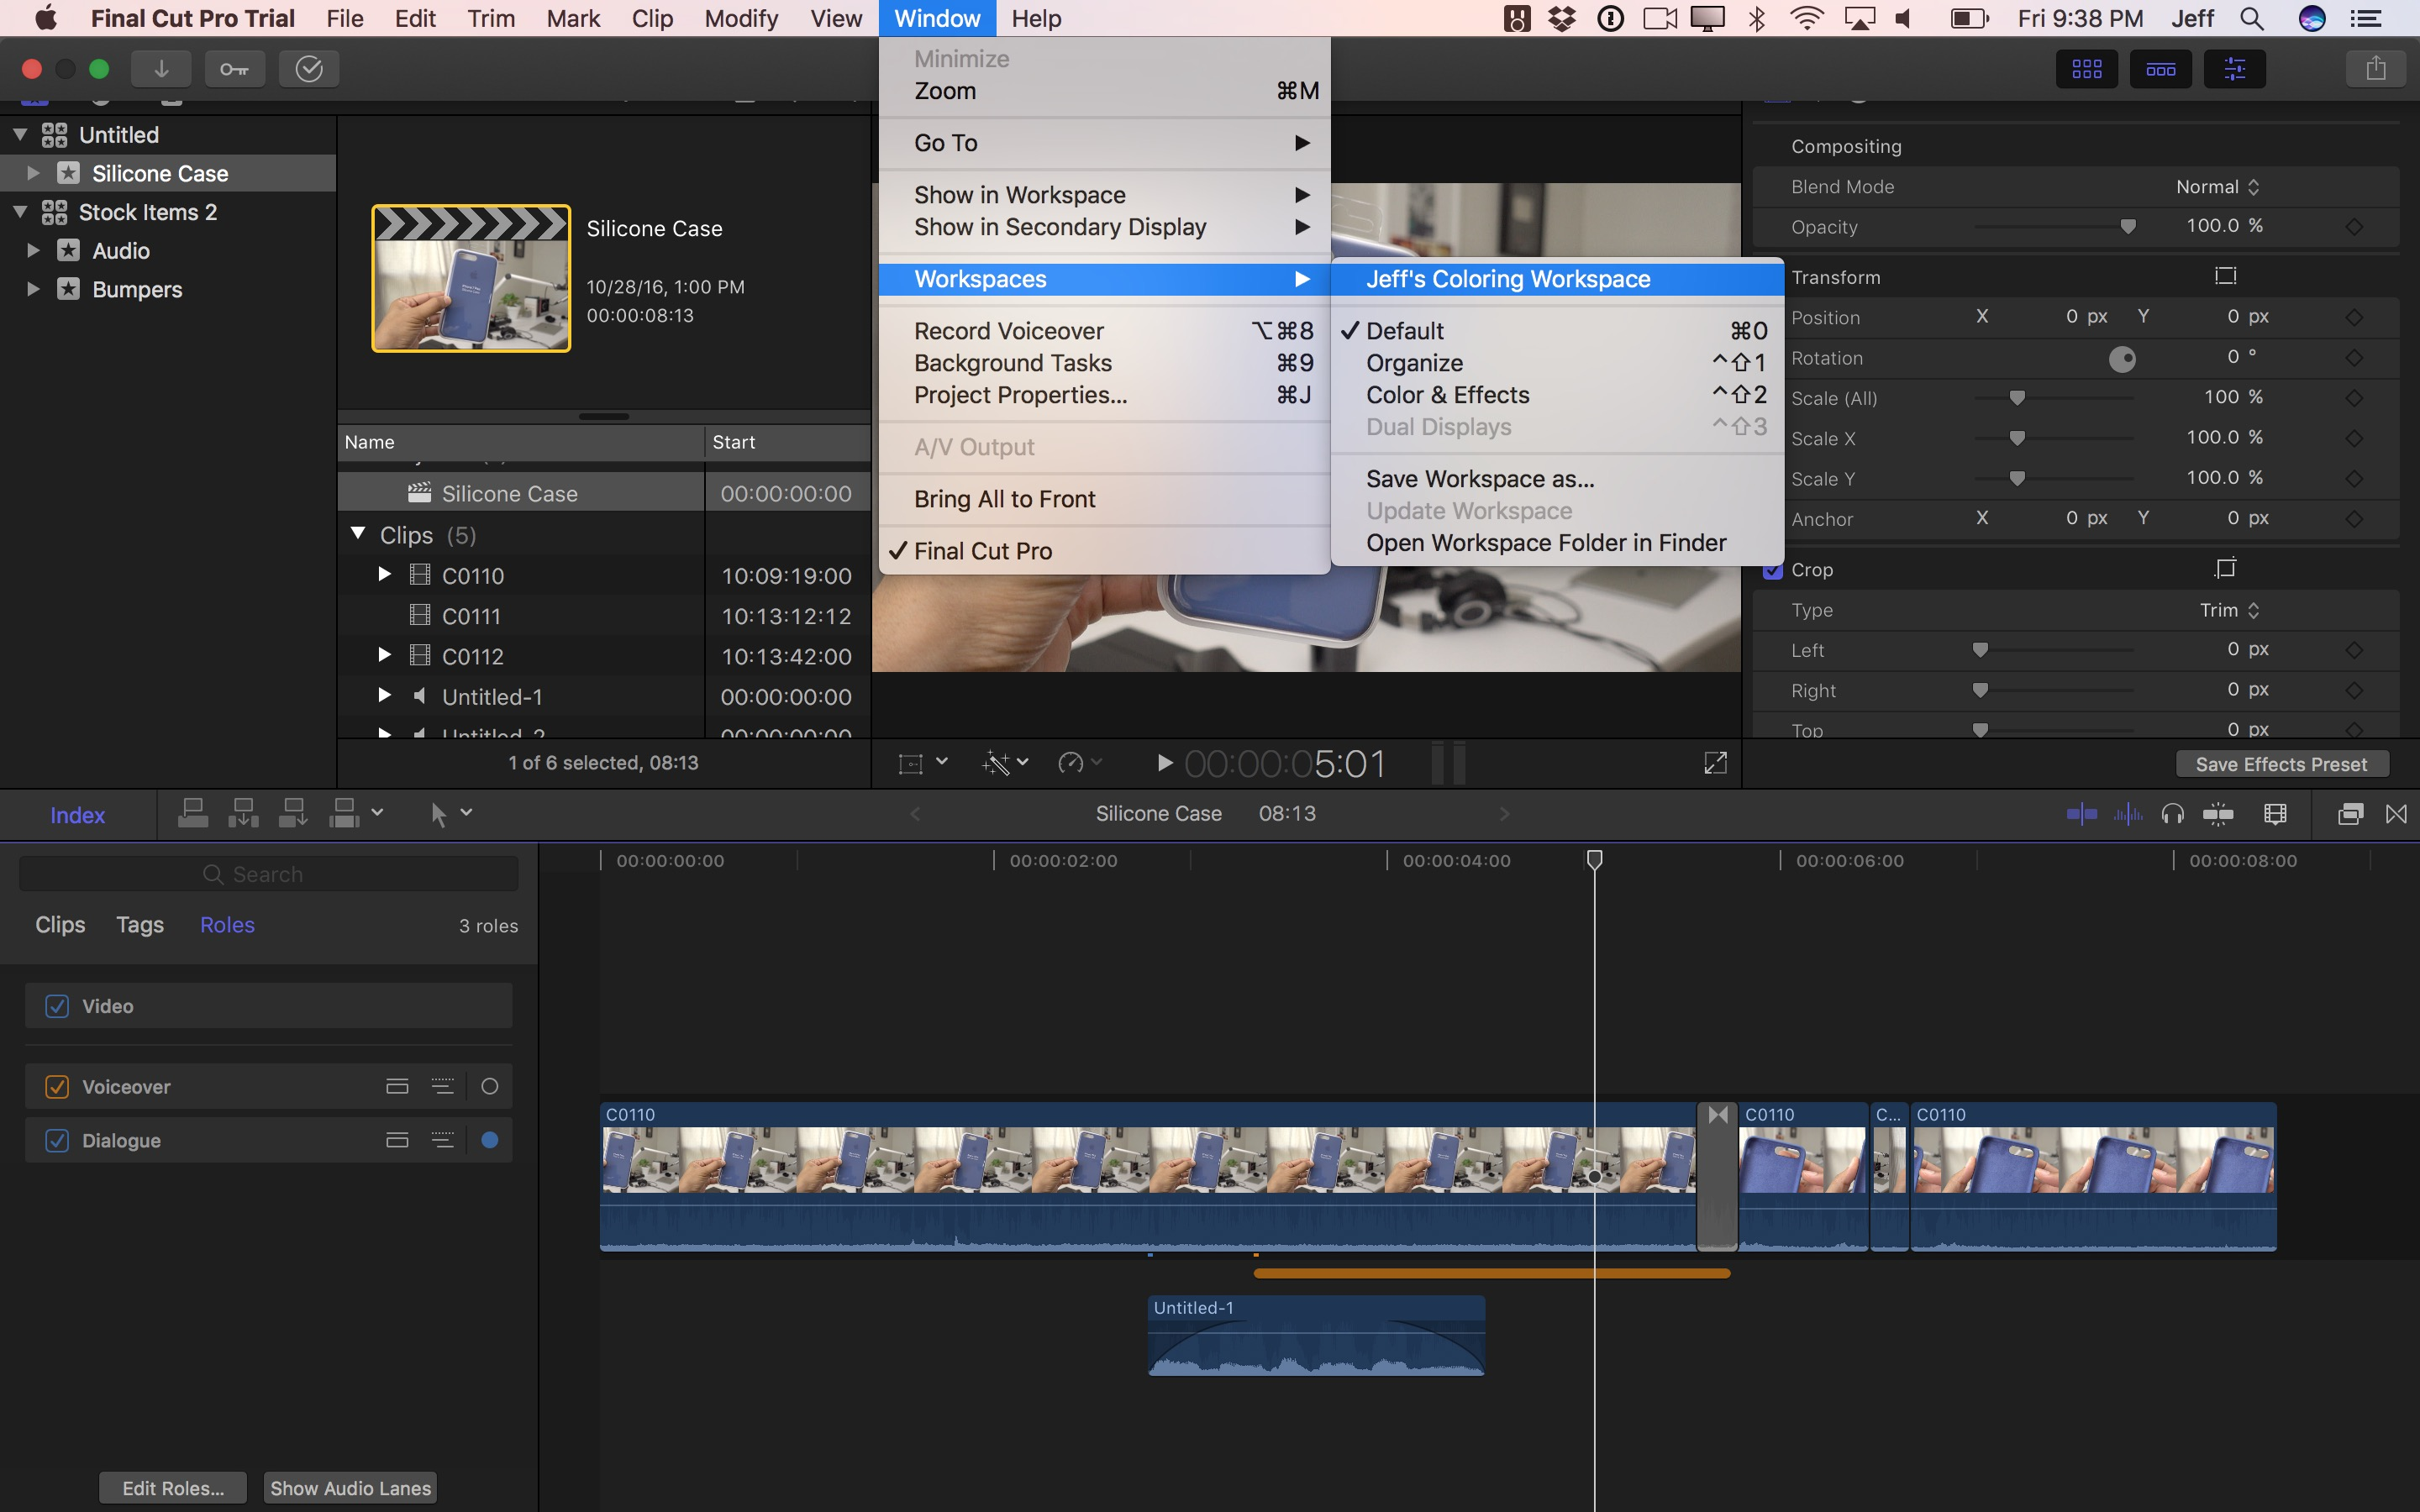 10 Awesome New Final Cut Pro X Version 10 3 Features Video 9to5mac